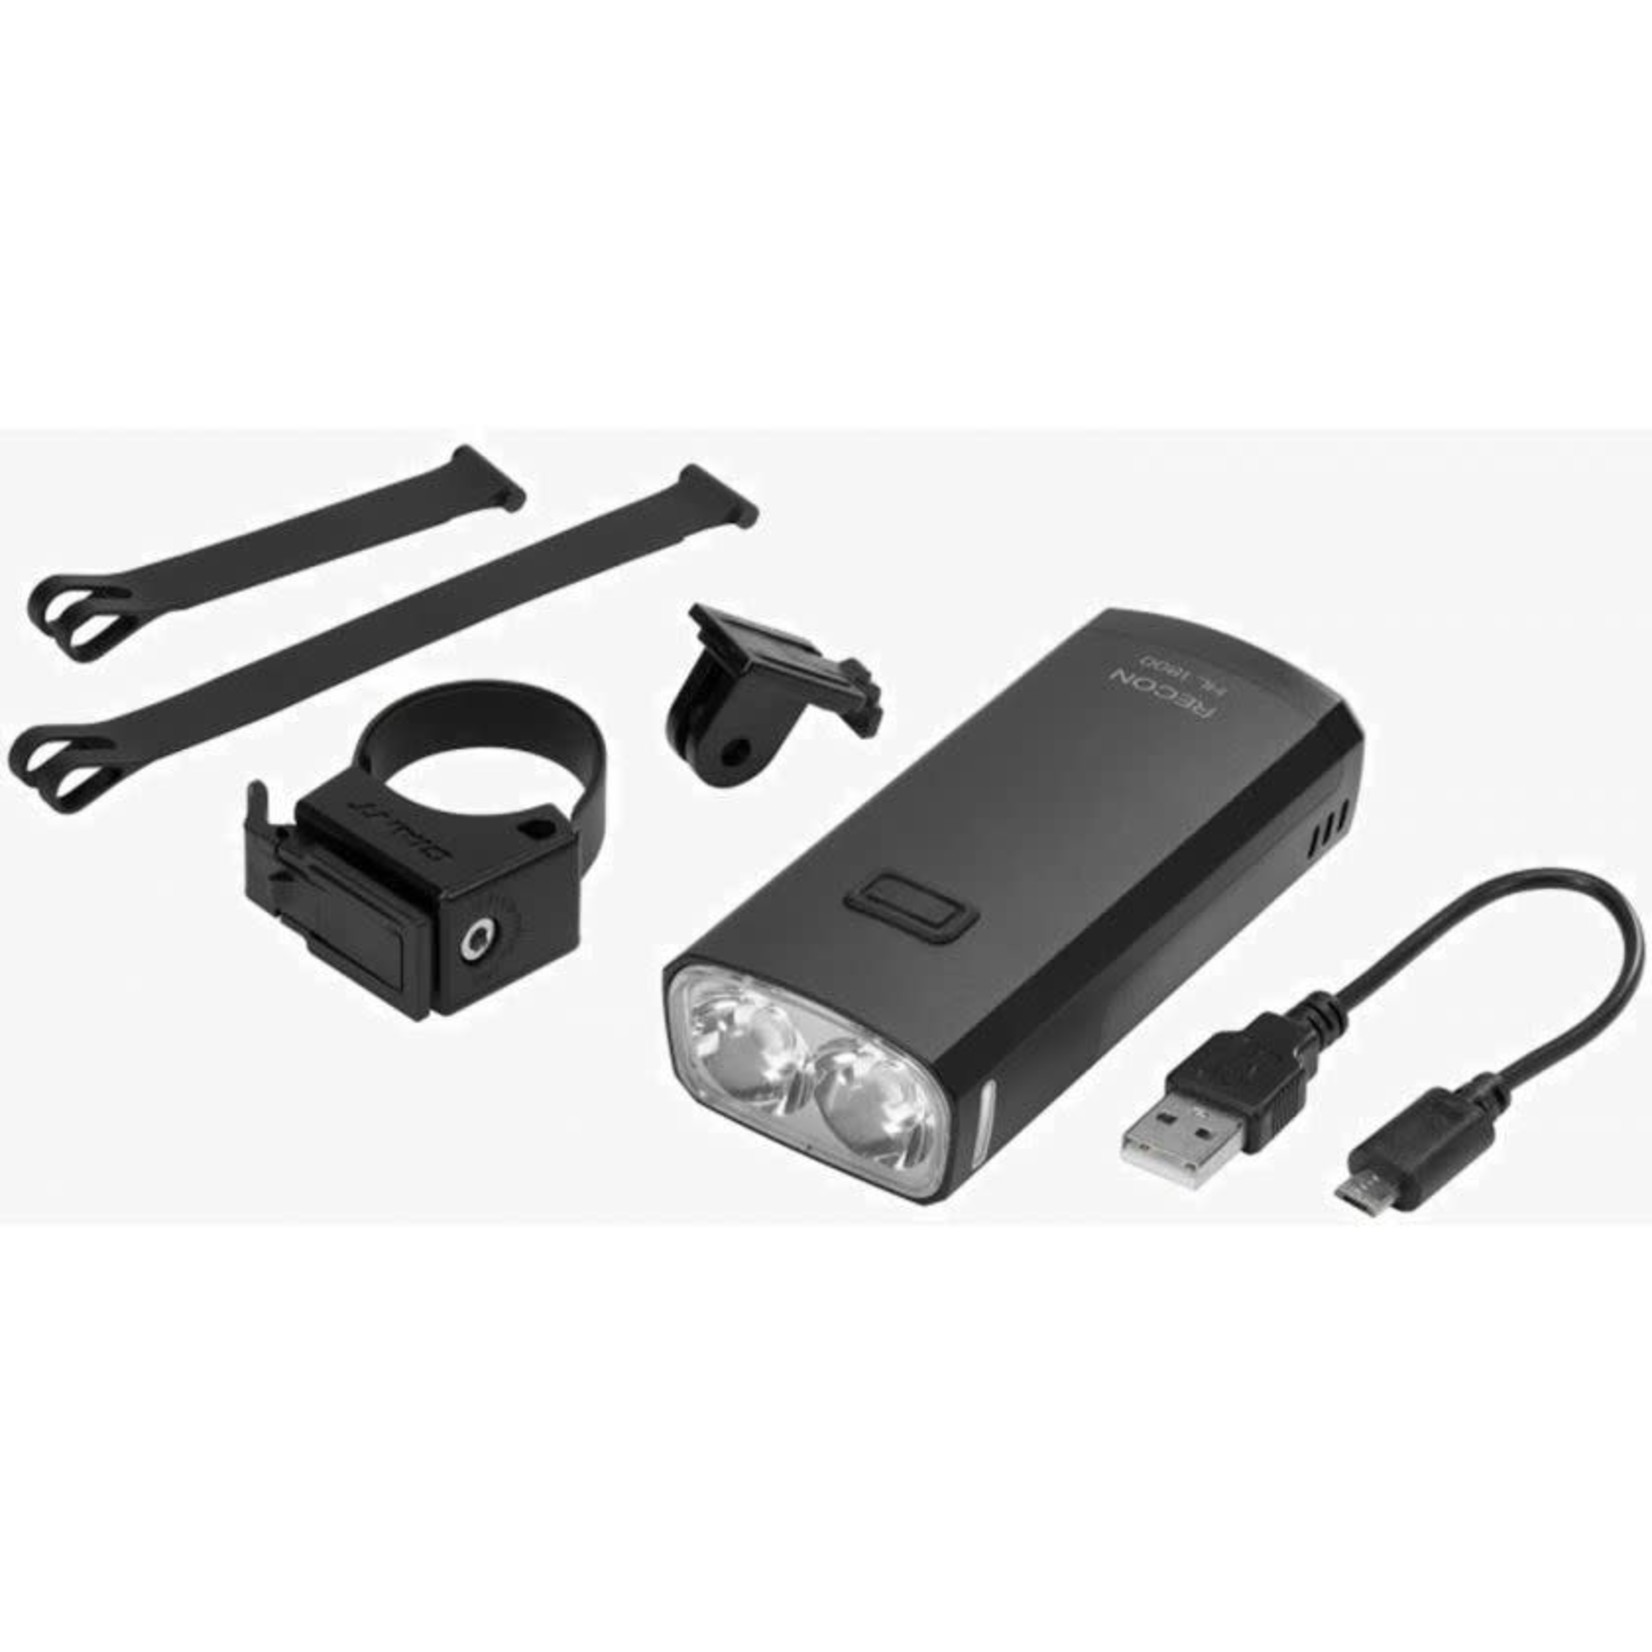 GIANT Giant Recon HL1800 Front Light